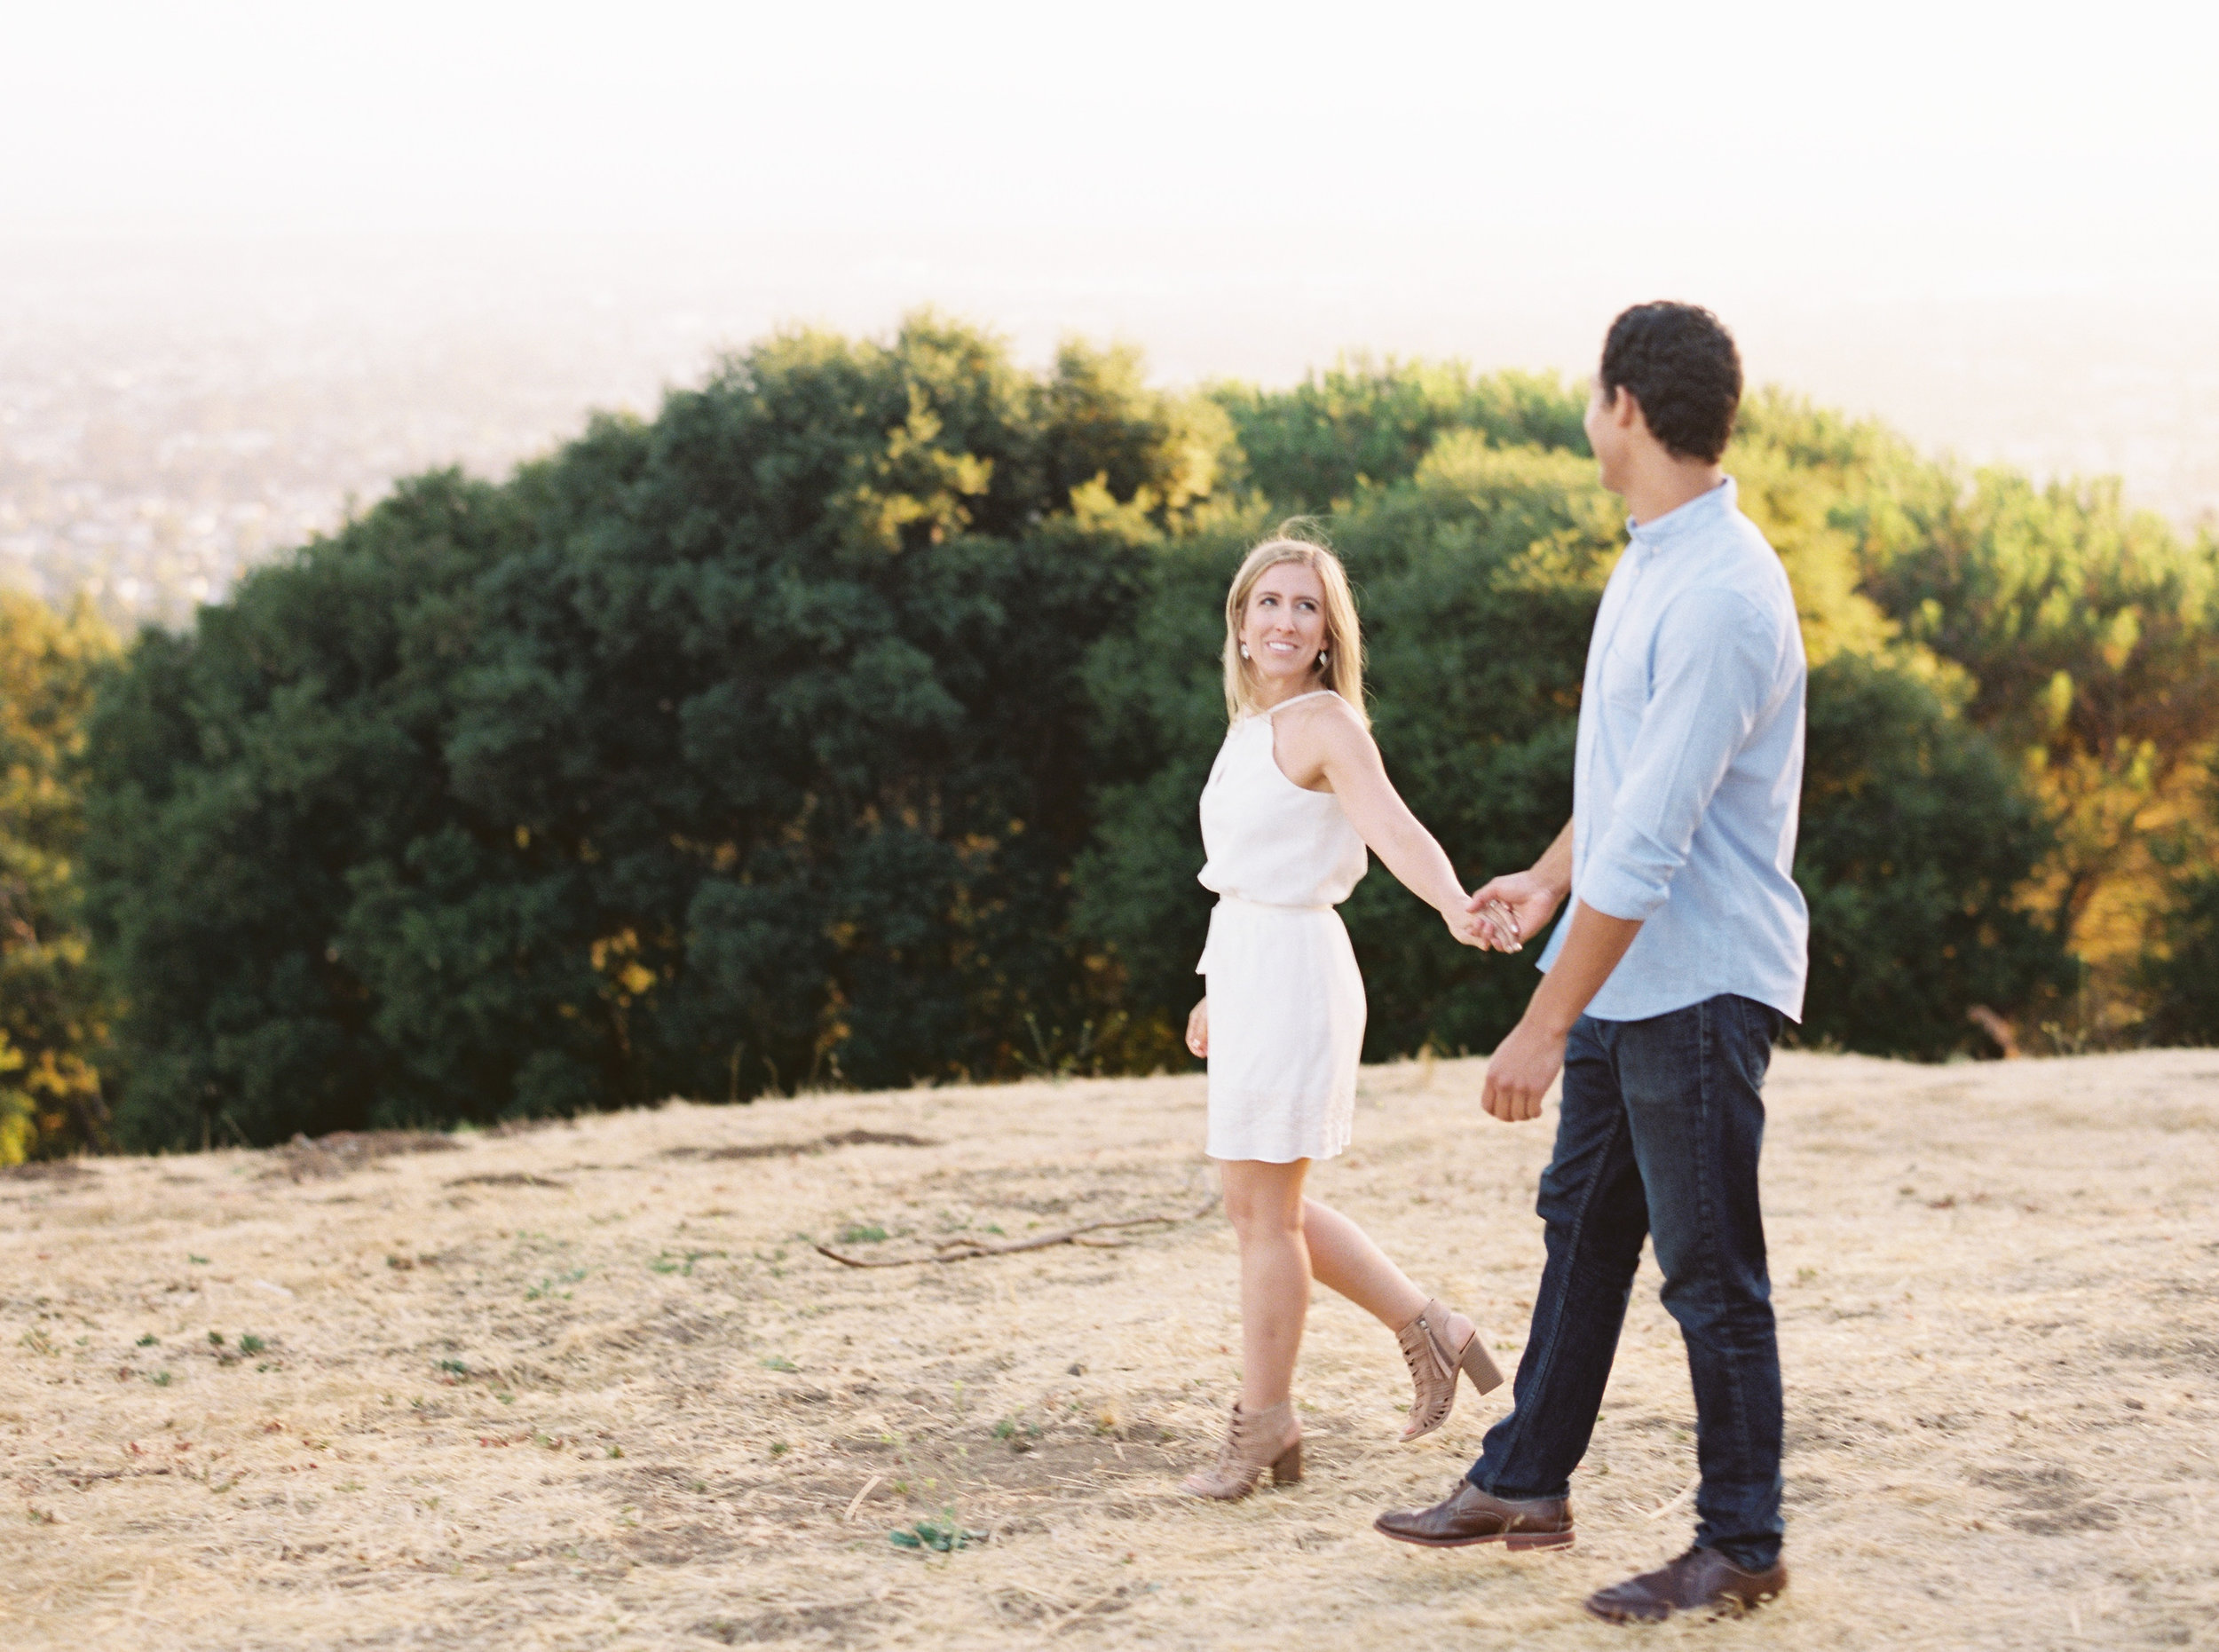 redwood-forest-engagement-in-oakland-california-35.jpg